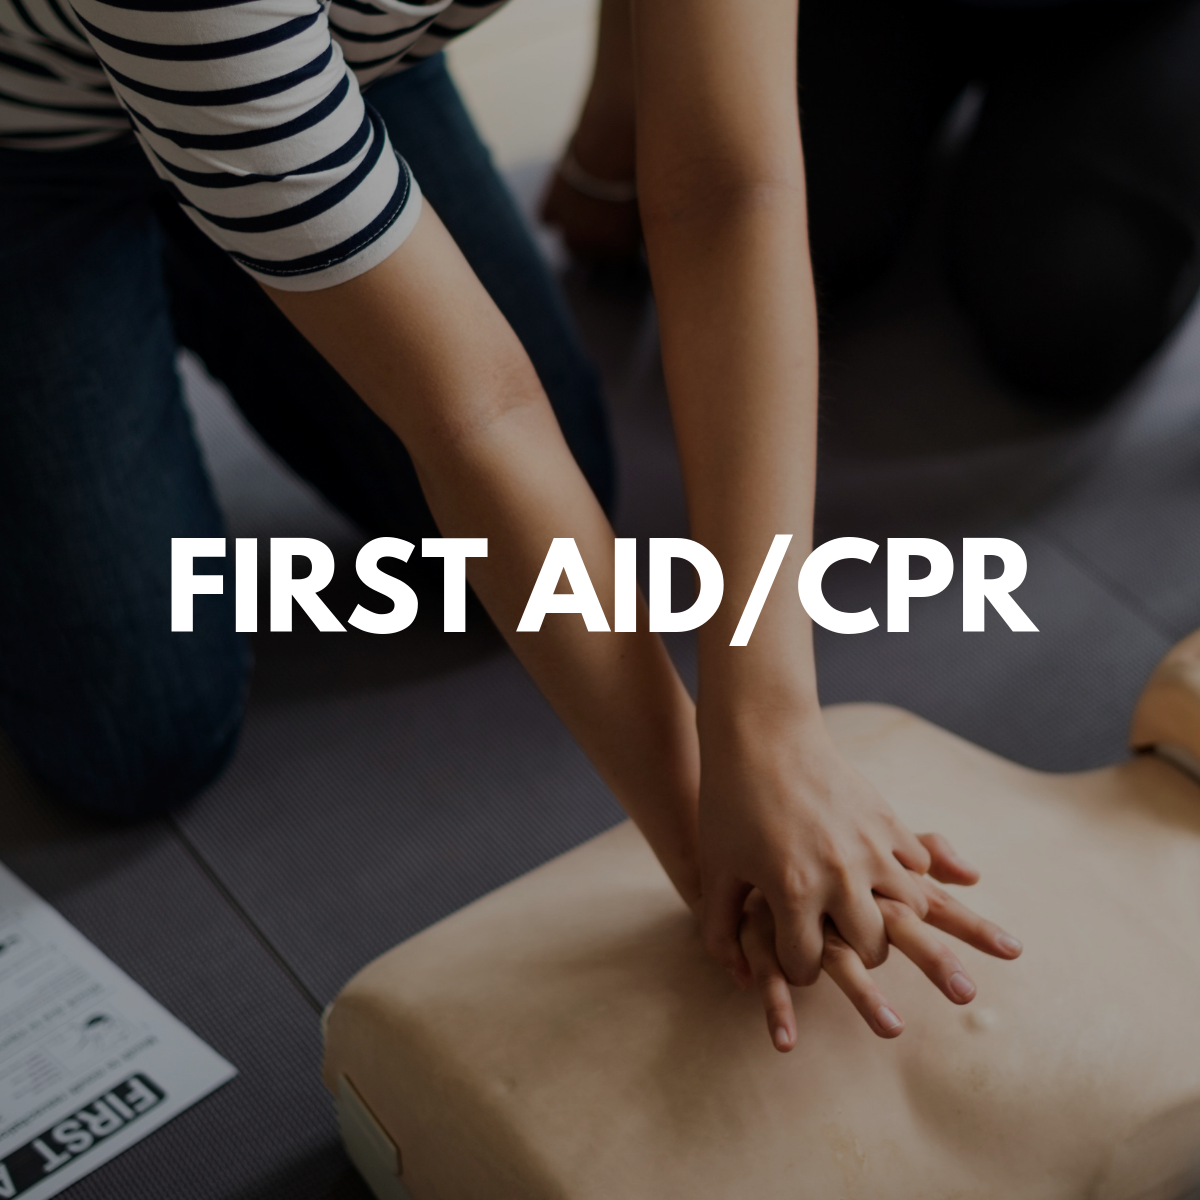 First Aid/CPR